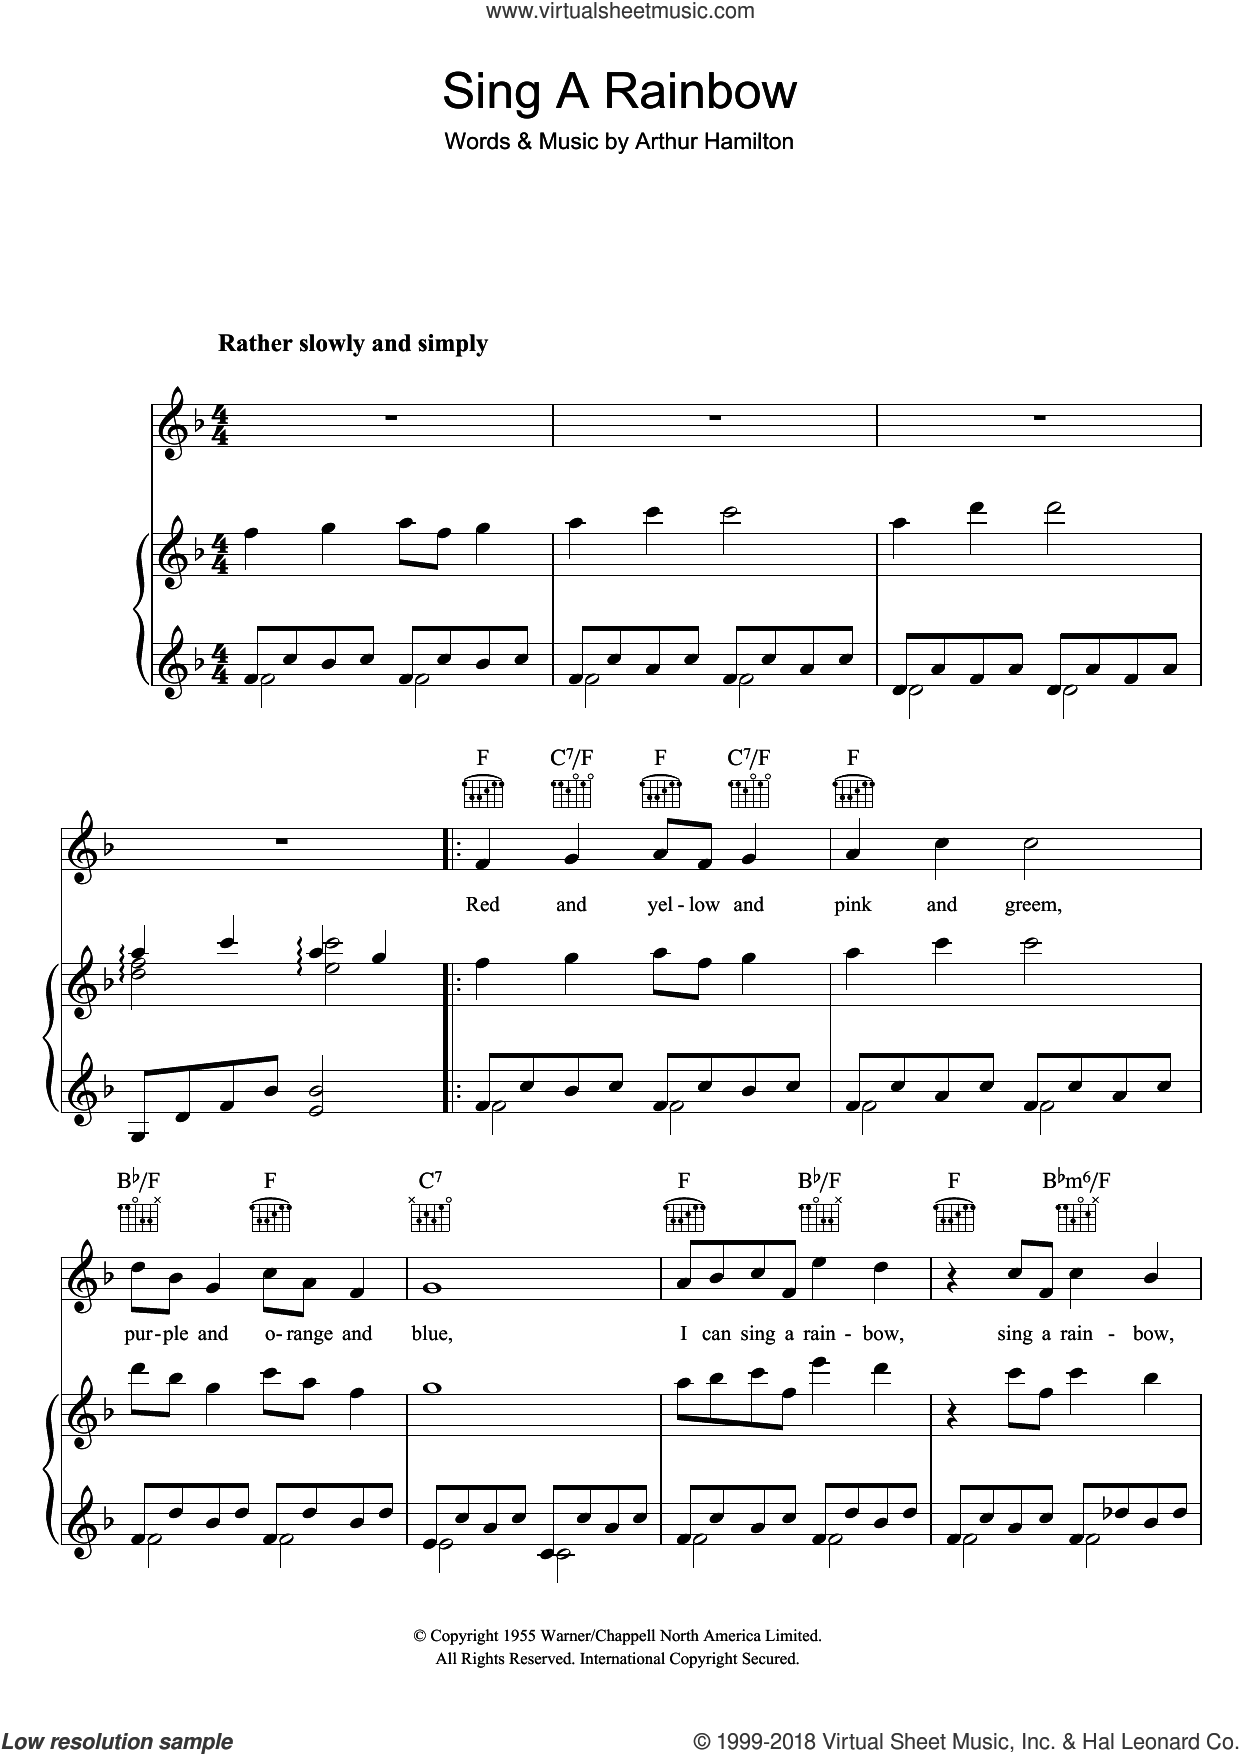 Sing A Rainbow sheet music for voice, piano or guitar by Arthur Hamilton, intermediate skill level